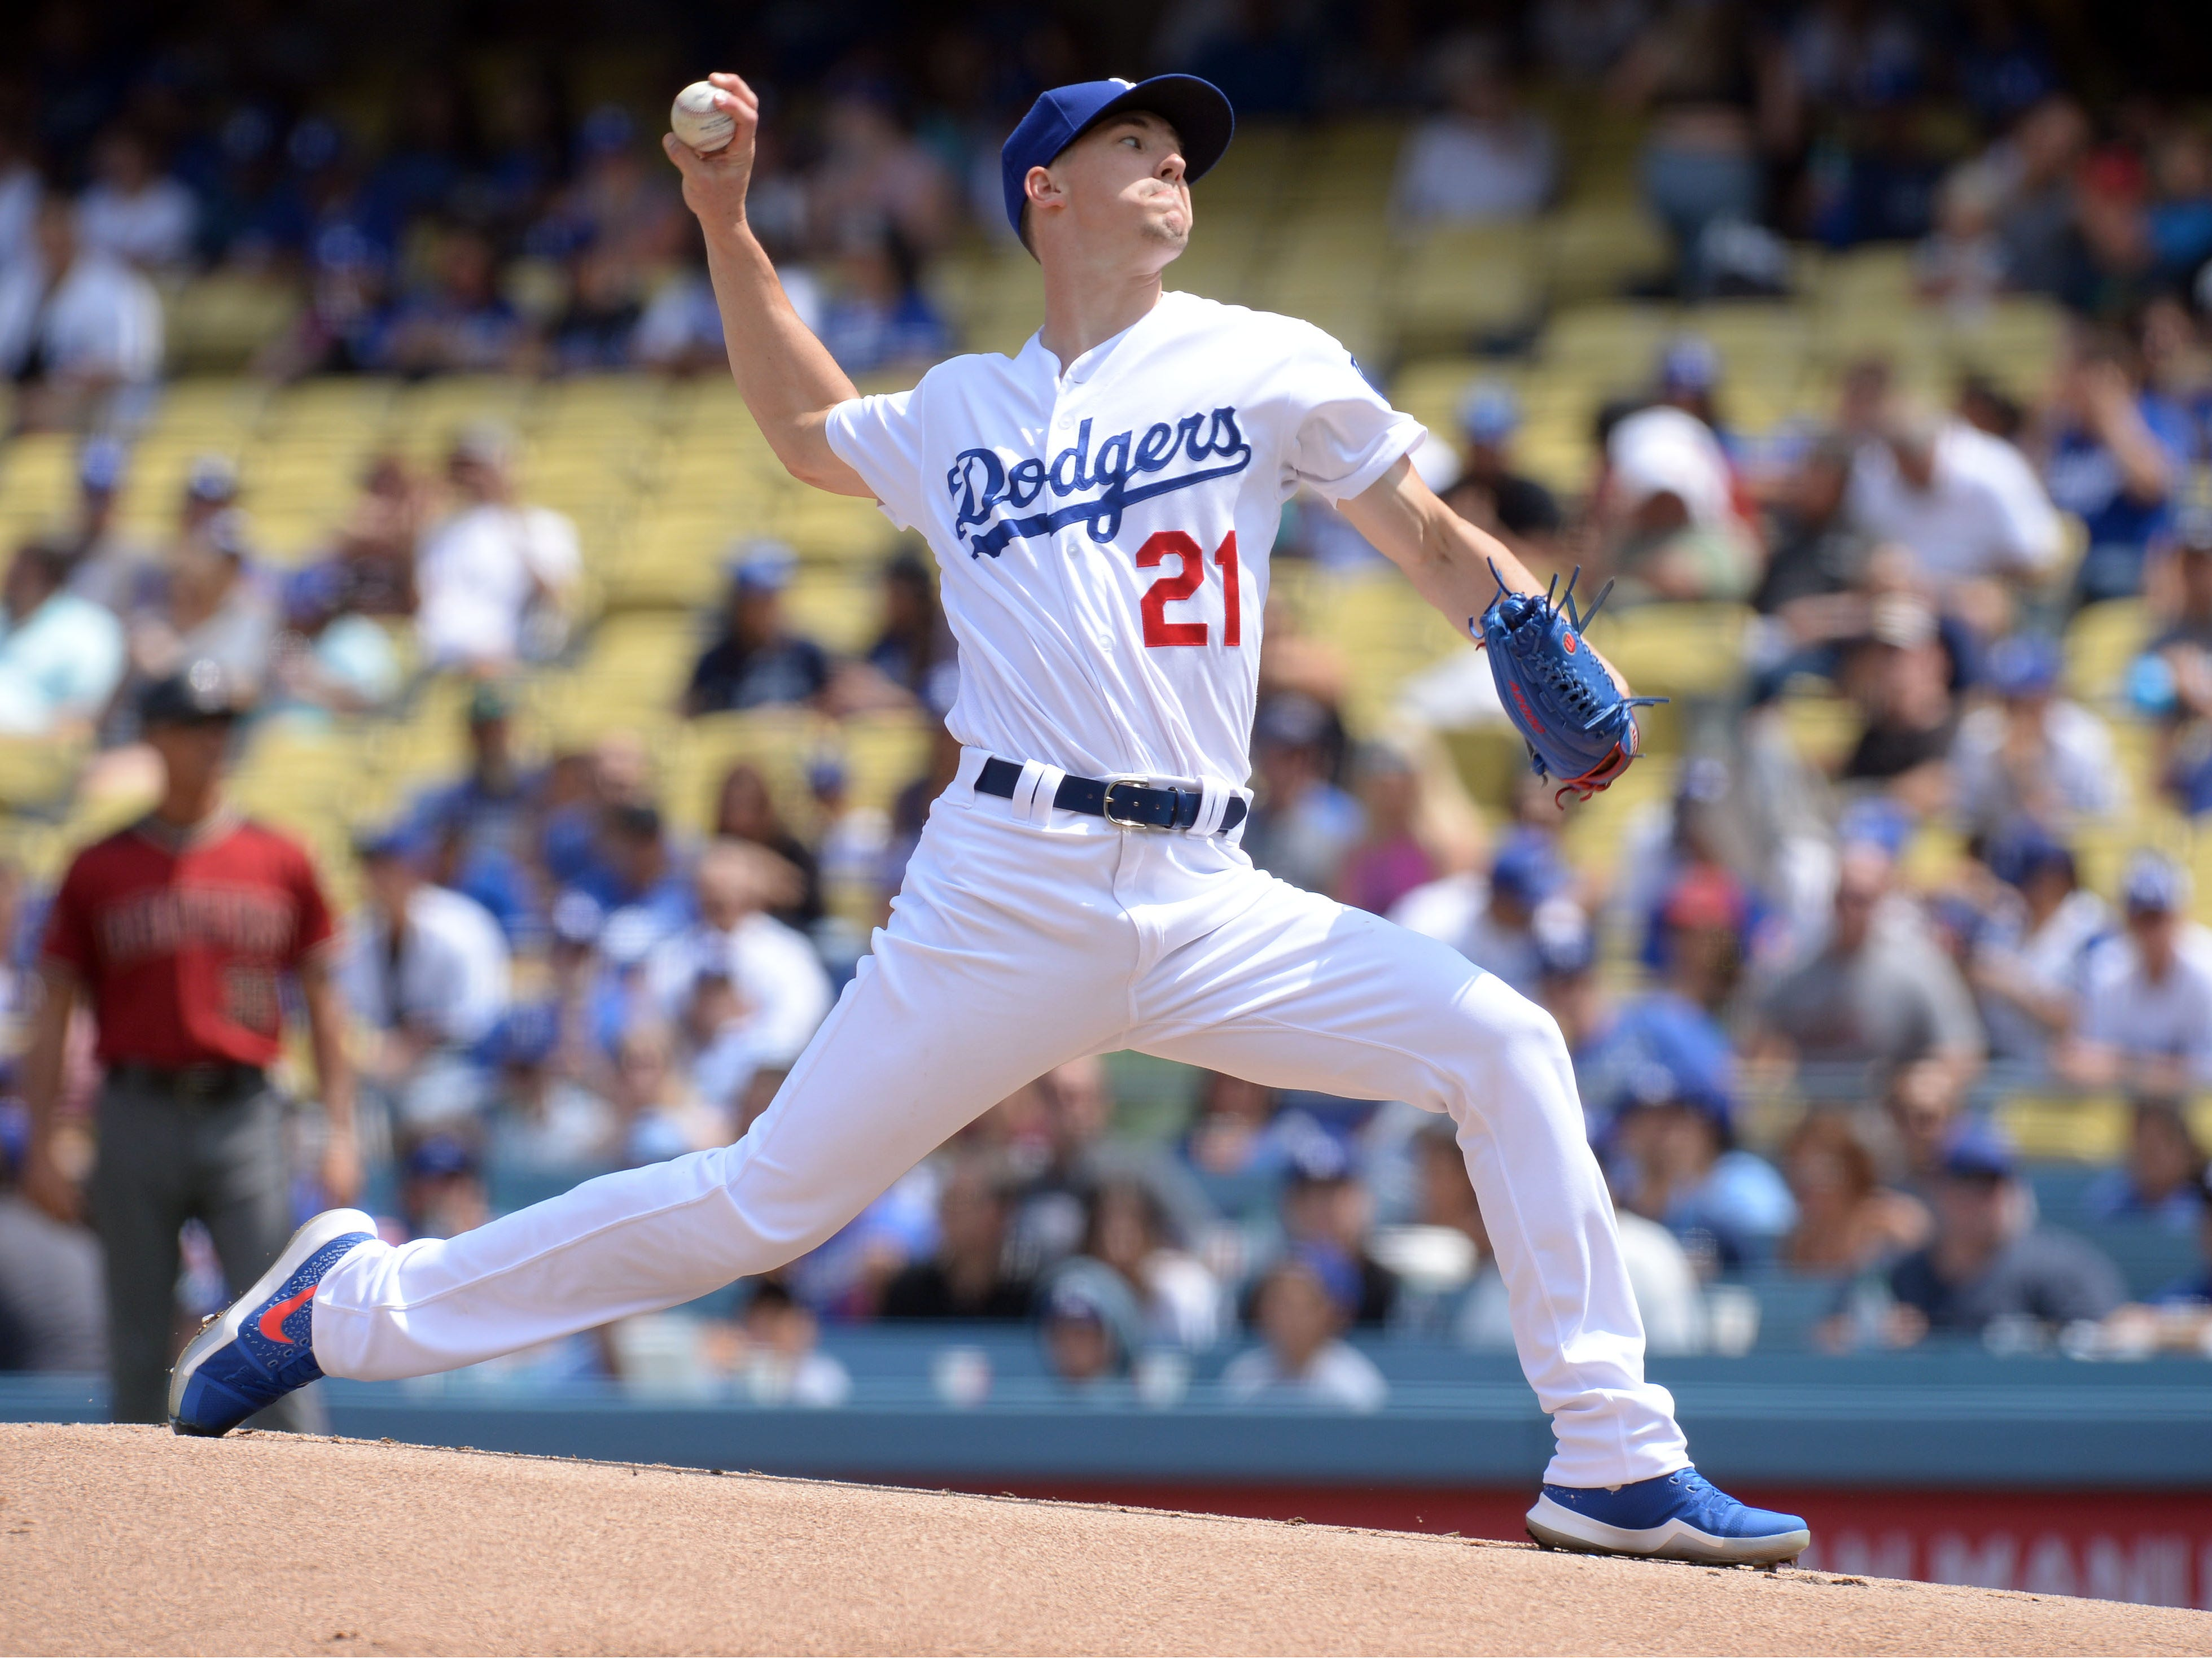 September 2, 2018; Los Angeles, CA, USA; Los Angeles Dodgers starting pitcher Walker Buehler (21) throws against the Arizona Diamondbacks in the first inning at Dodger Stadium. Mandatory Credit: Gary A. Vasquez-USA TODAY Sports